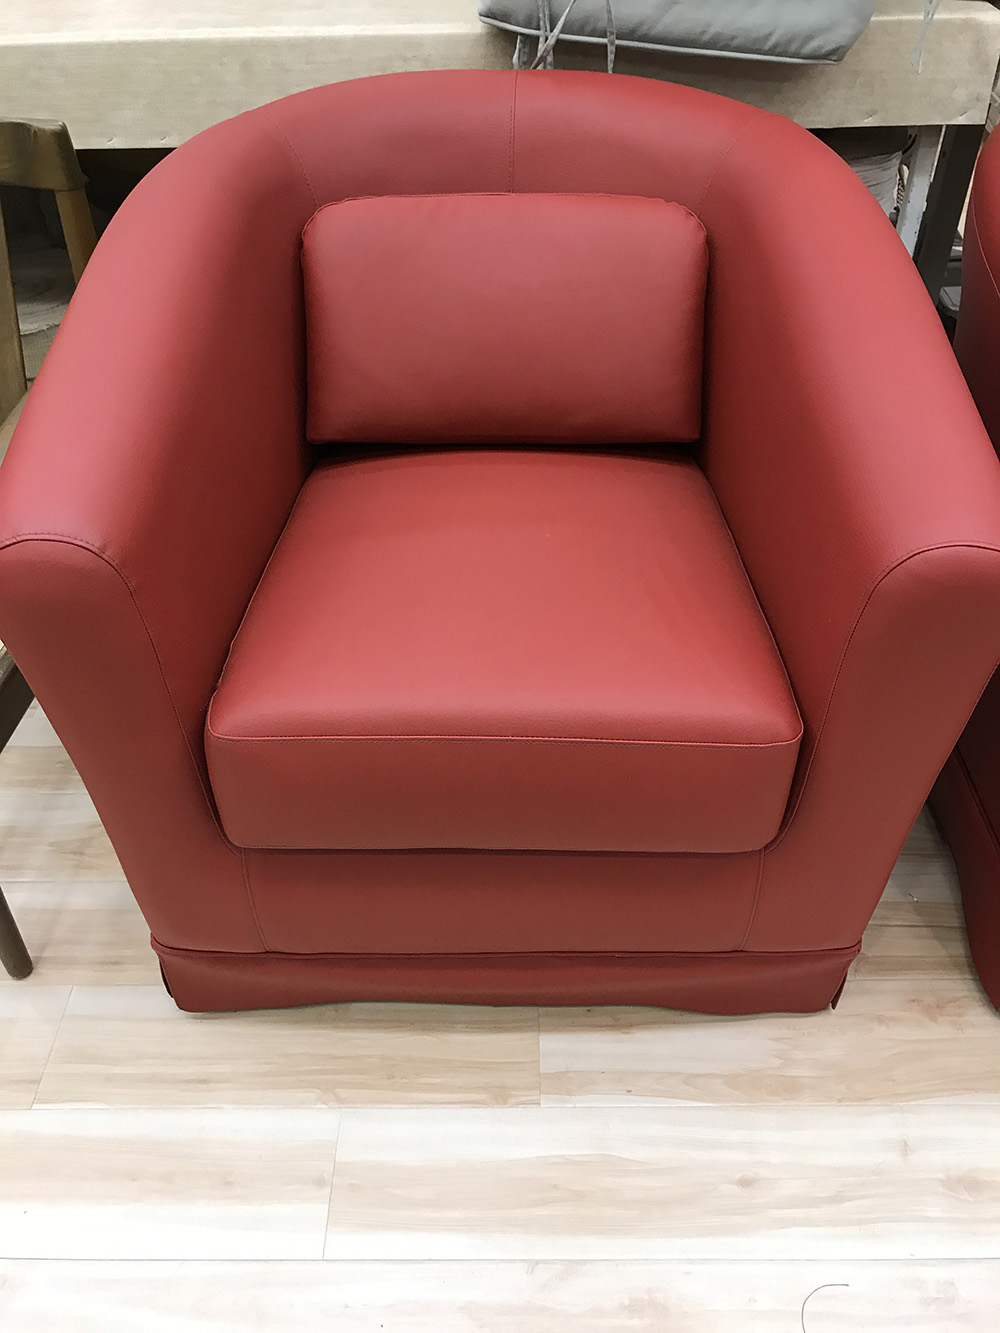 armchair-re-upholstery-1